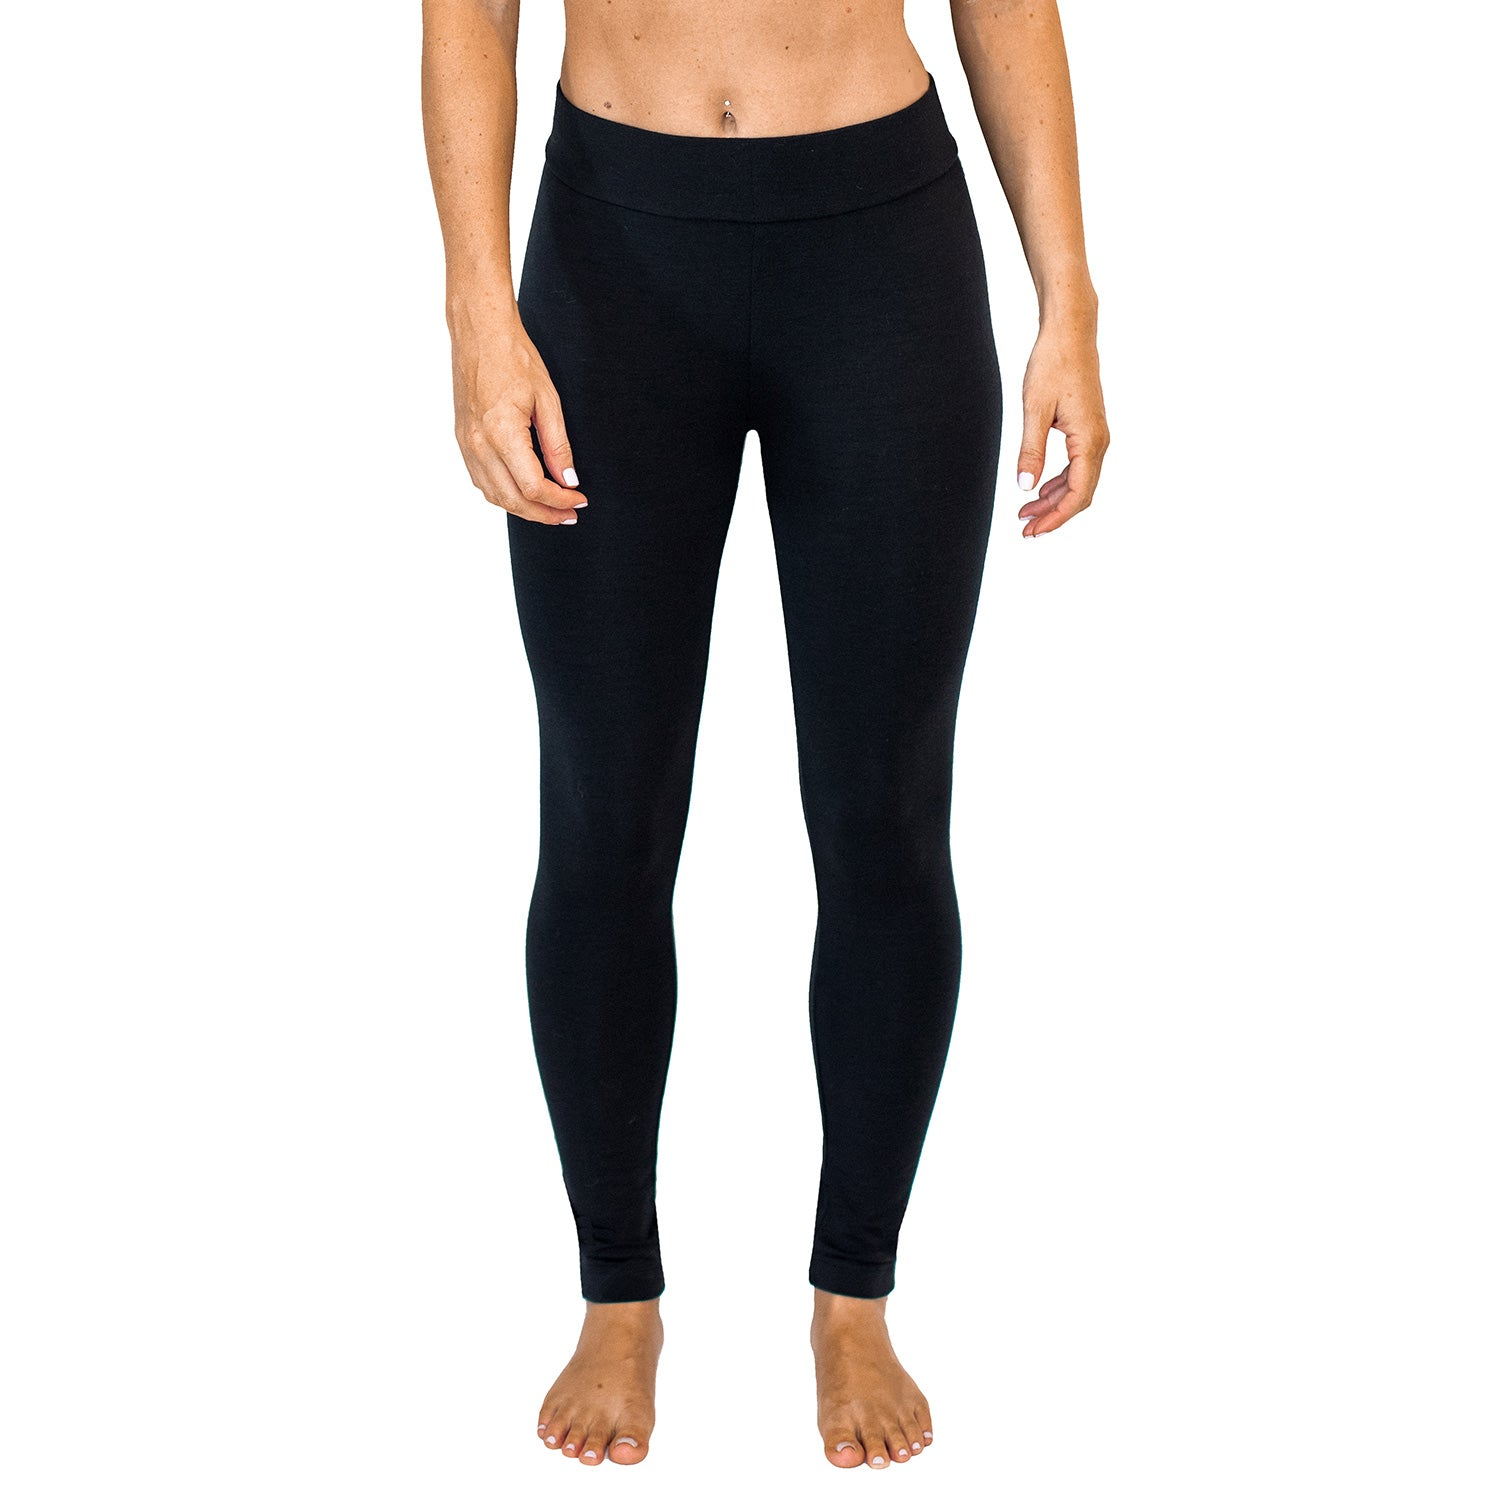 Womens Merino Wool Leggings - Black